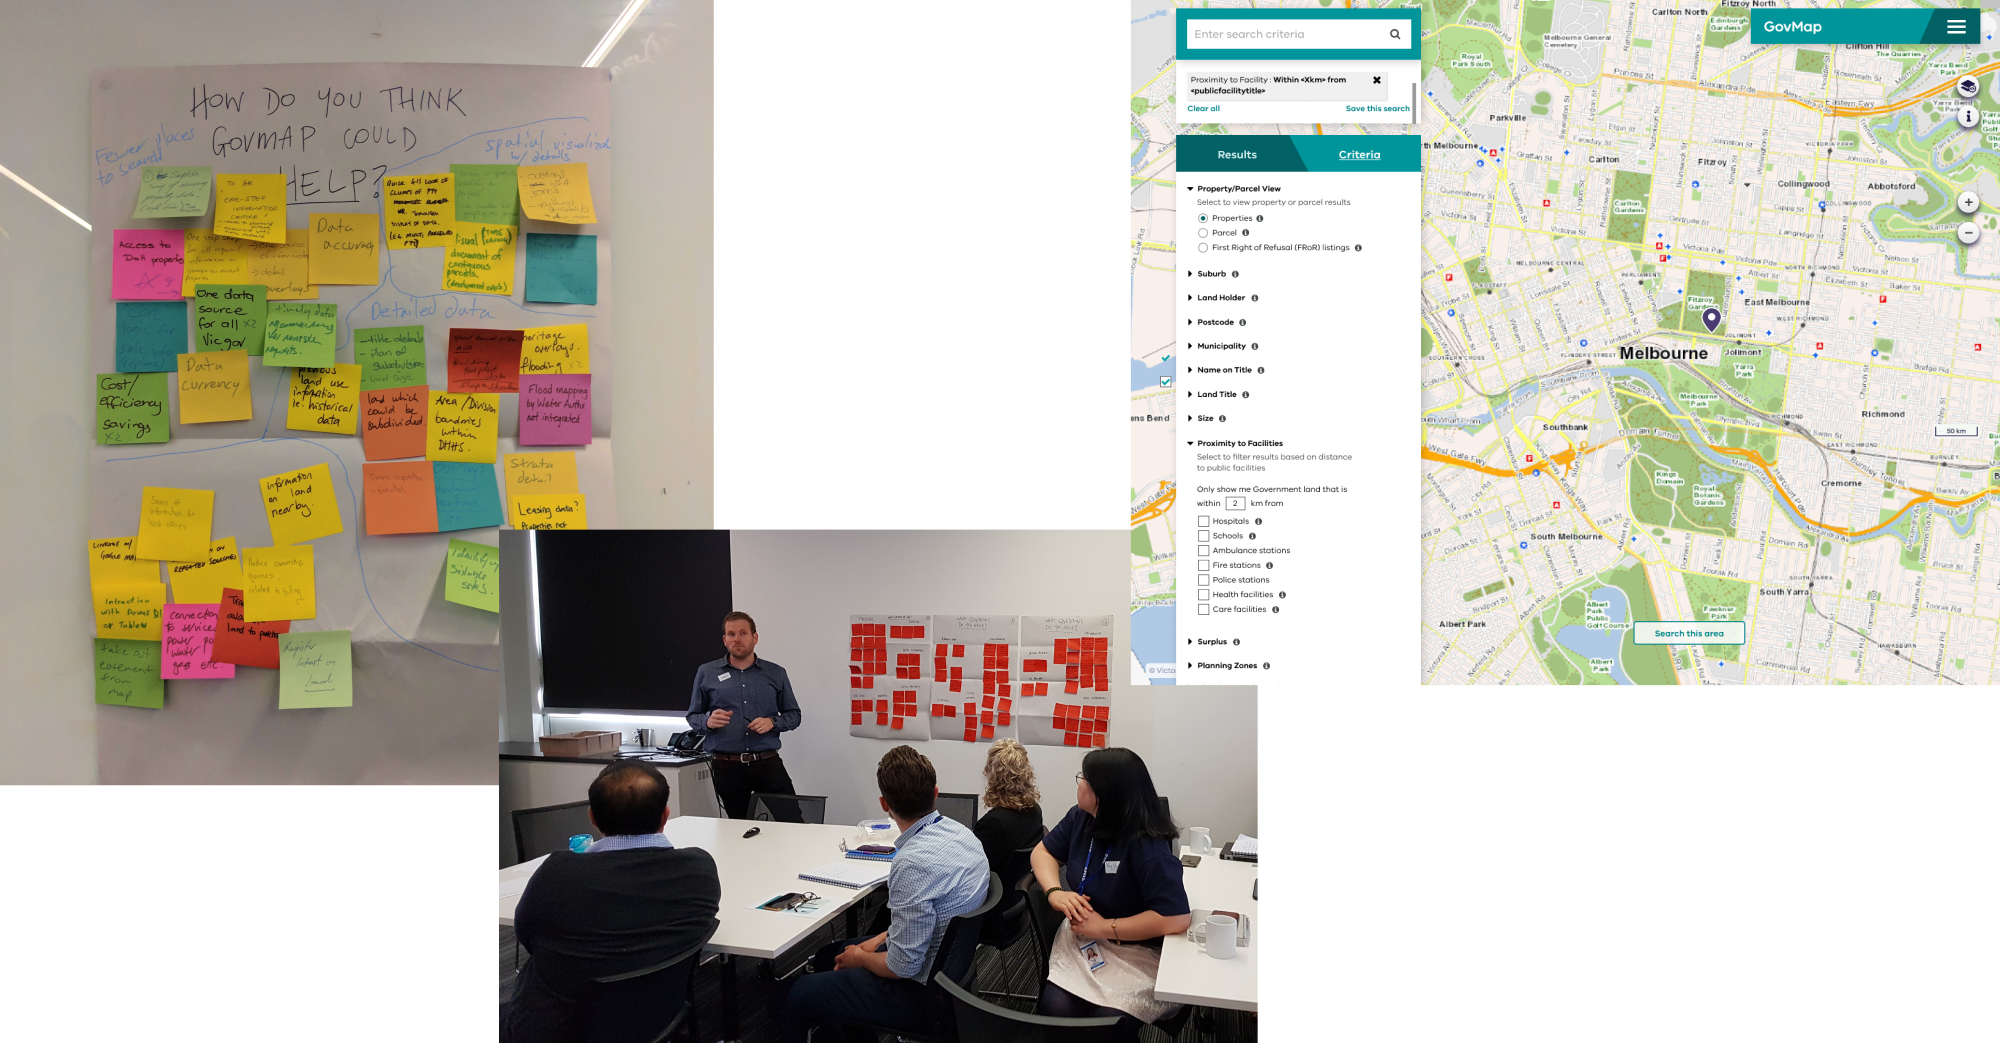 group of images showing codesign ideas on post-its, a codesign workshop, and a snapshot of govmap